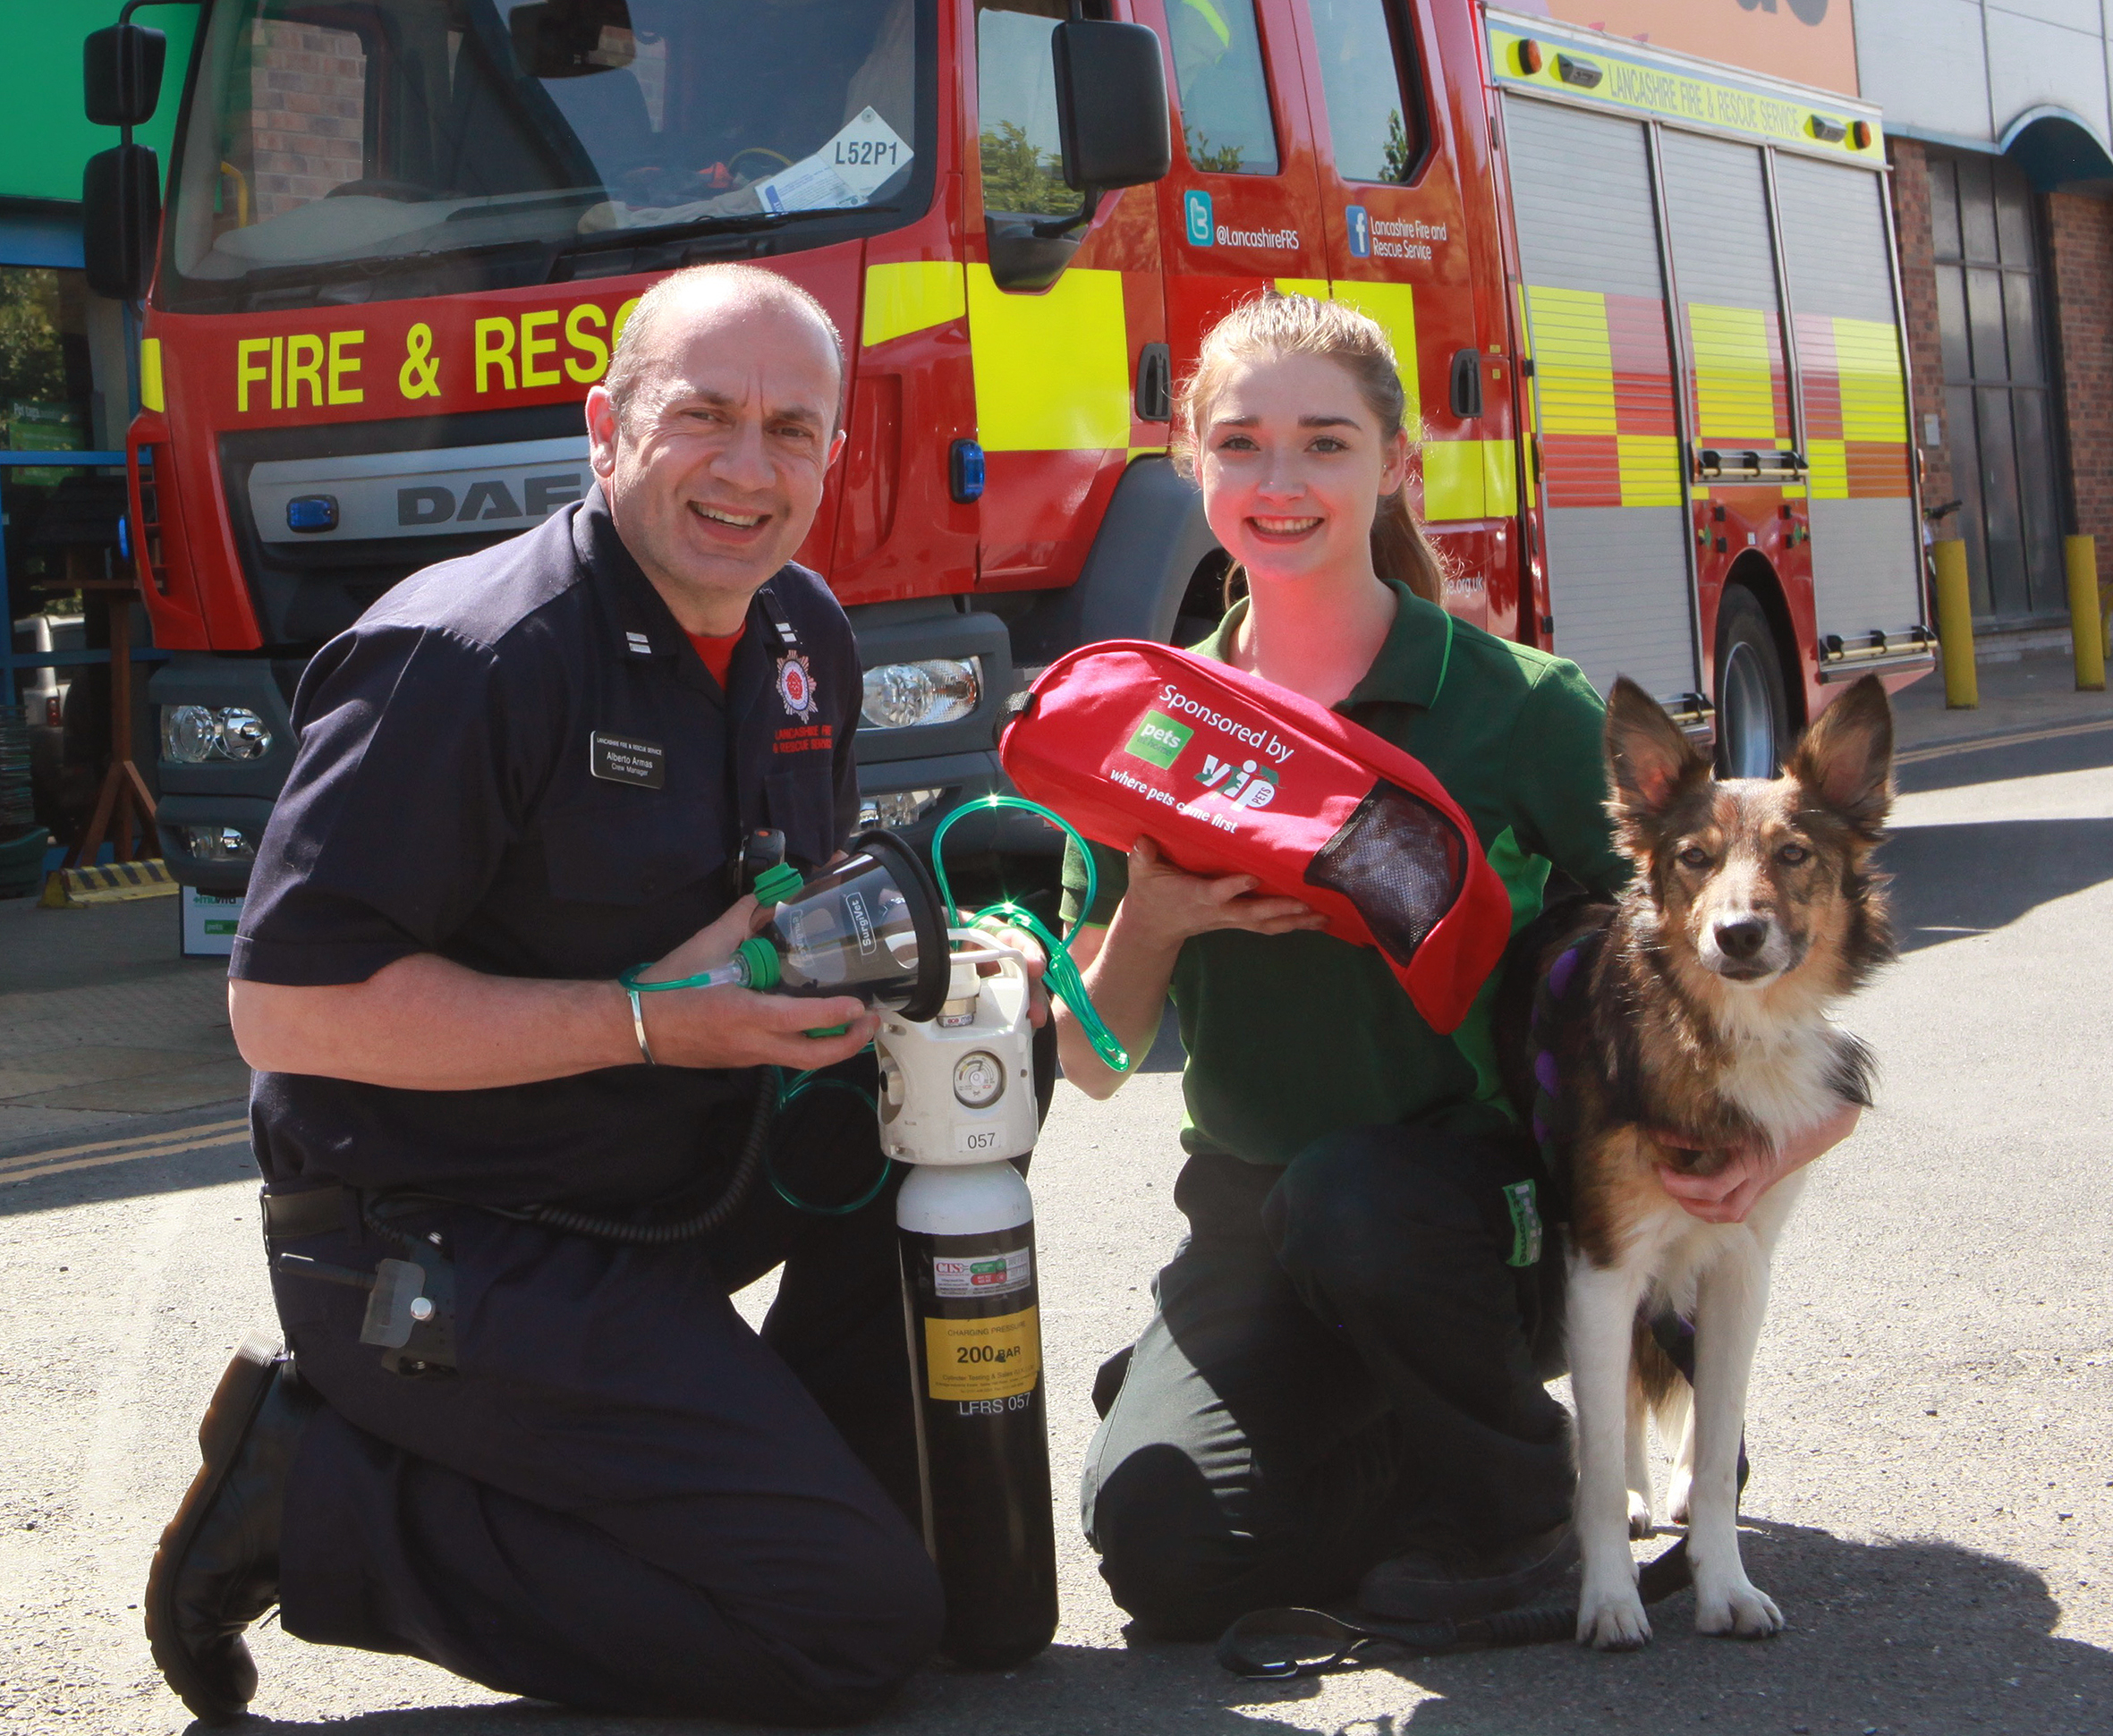 LIFESAVER: Firefighter Alberto Armas demonstrating the new pet equipment with representatives from Pets at Home, who helped Smokey Paws charity secure the cash